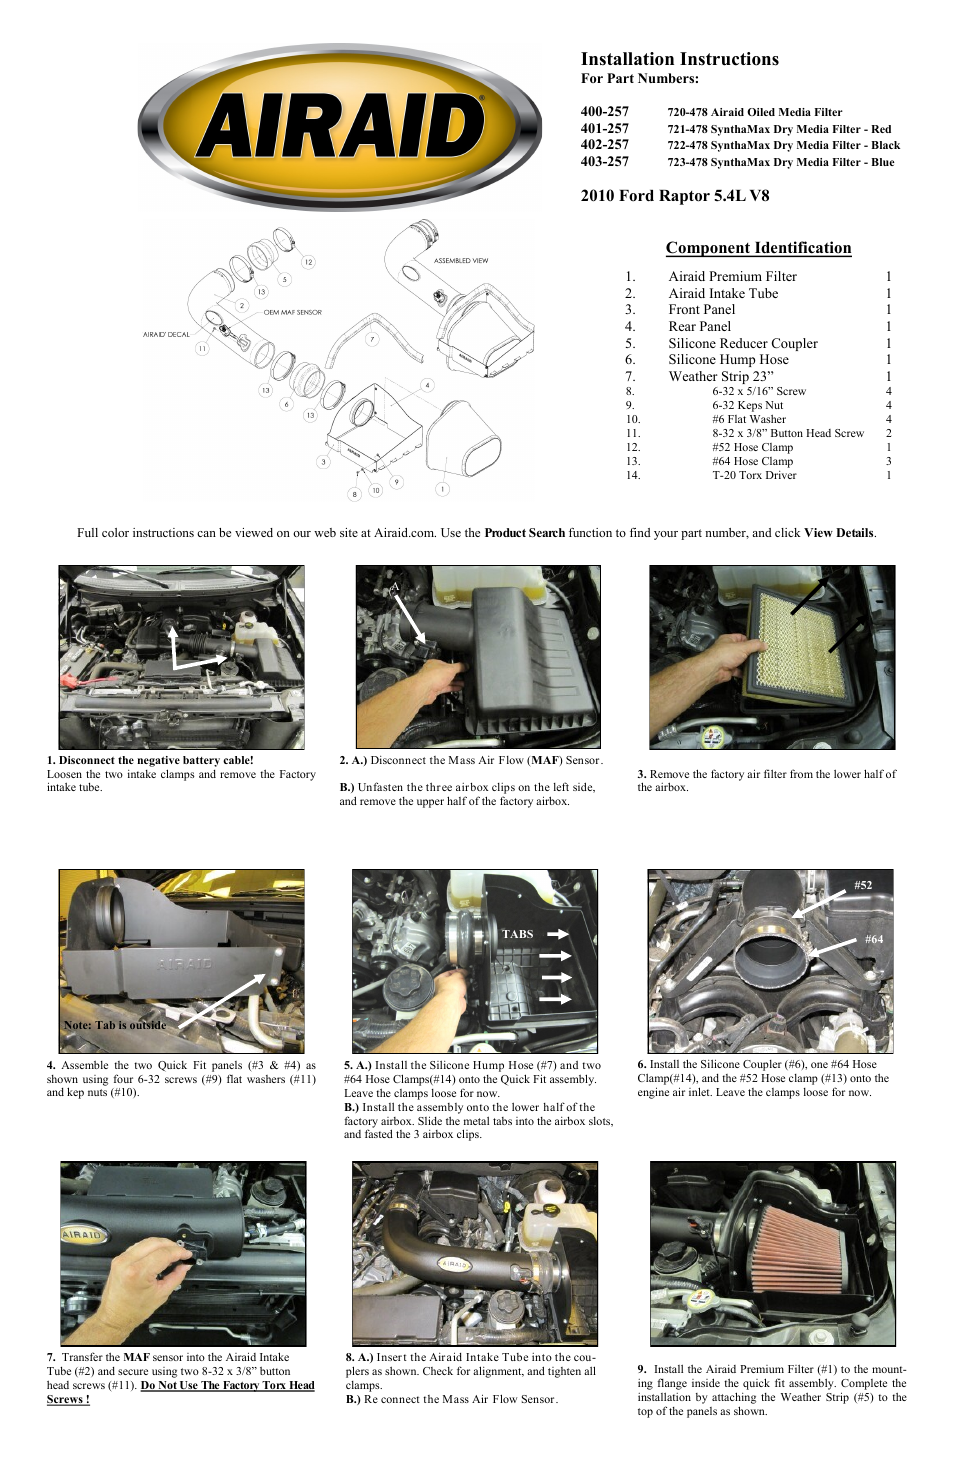 Airaid 400-257 User Manual | 2 pages | Also for: 401-257, 402-257